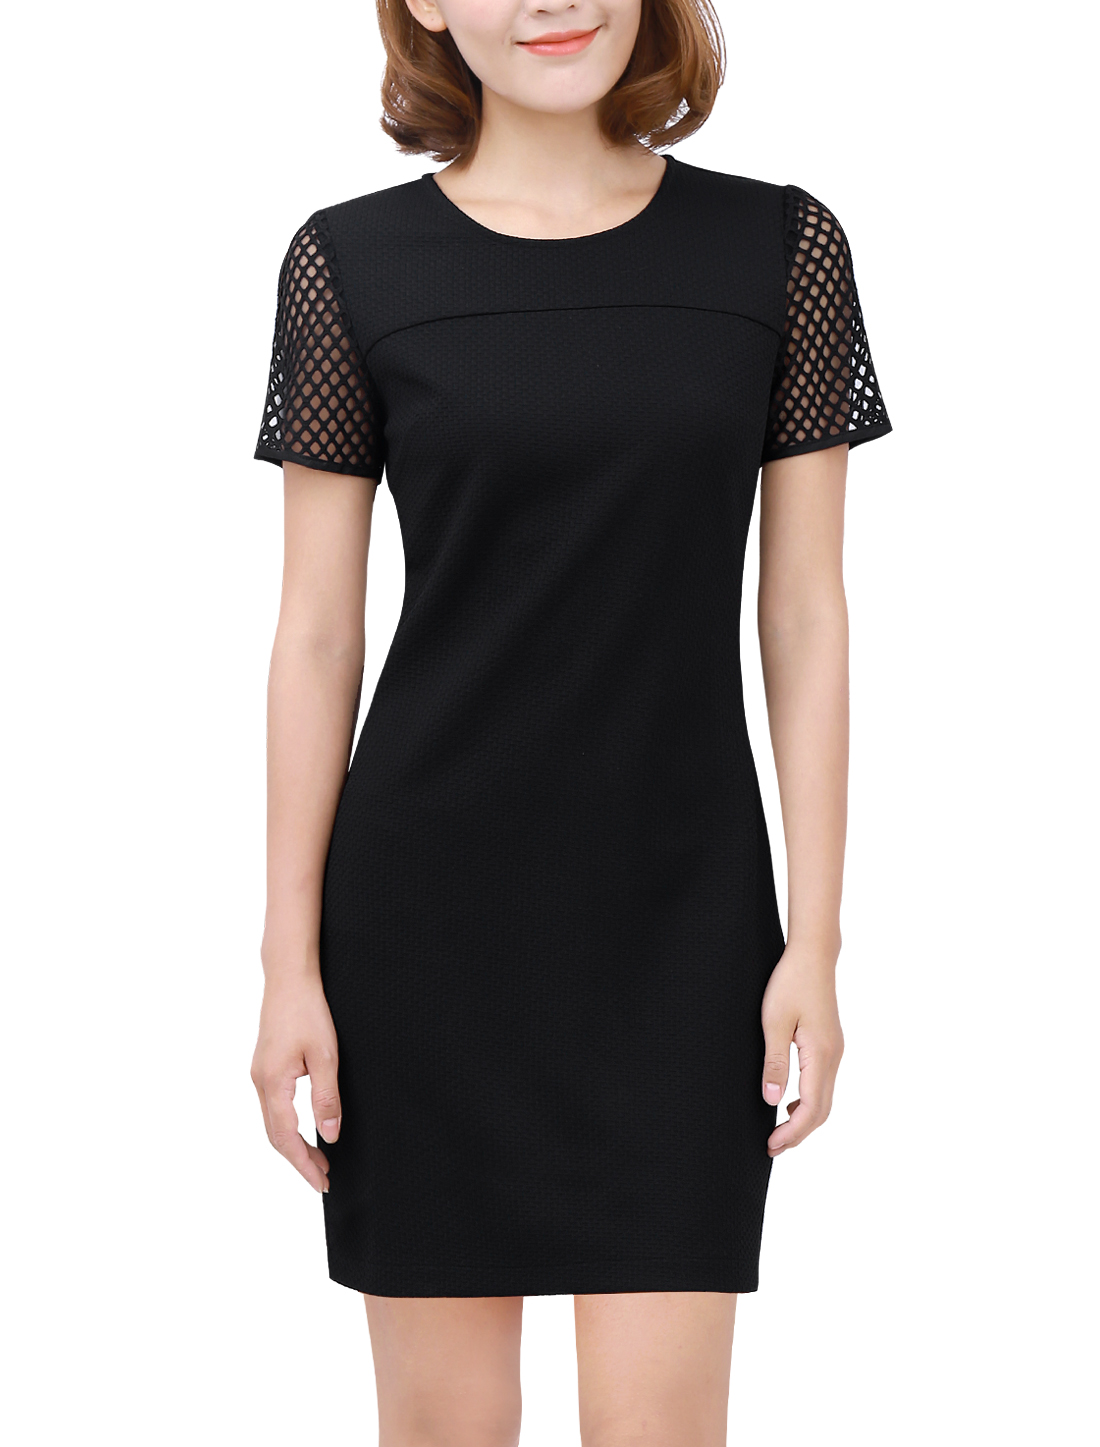 Ladies Short Sleeve Panel Unlined Casual Sheath Dress Black XS